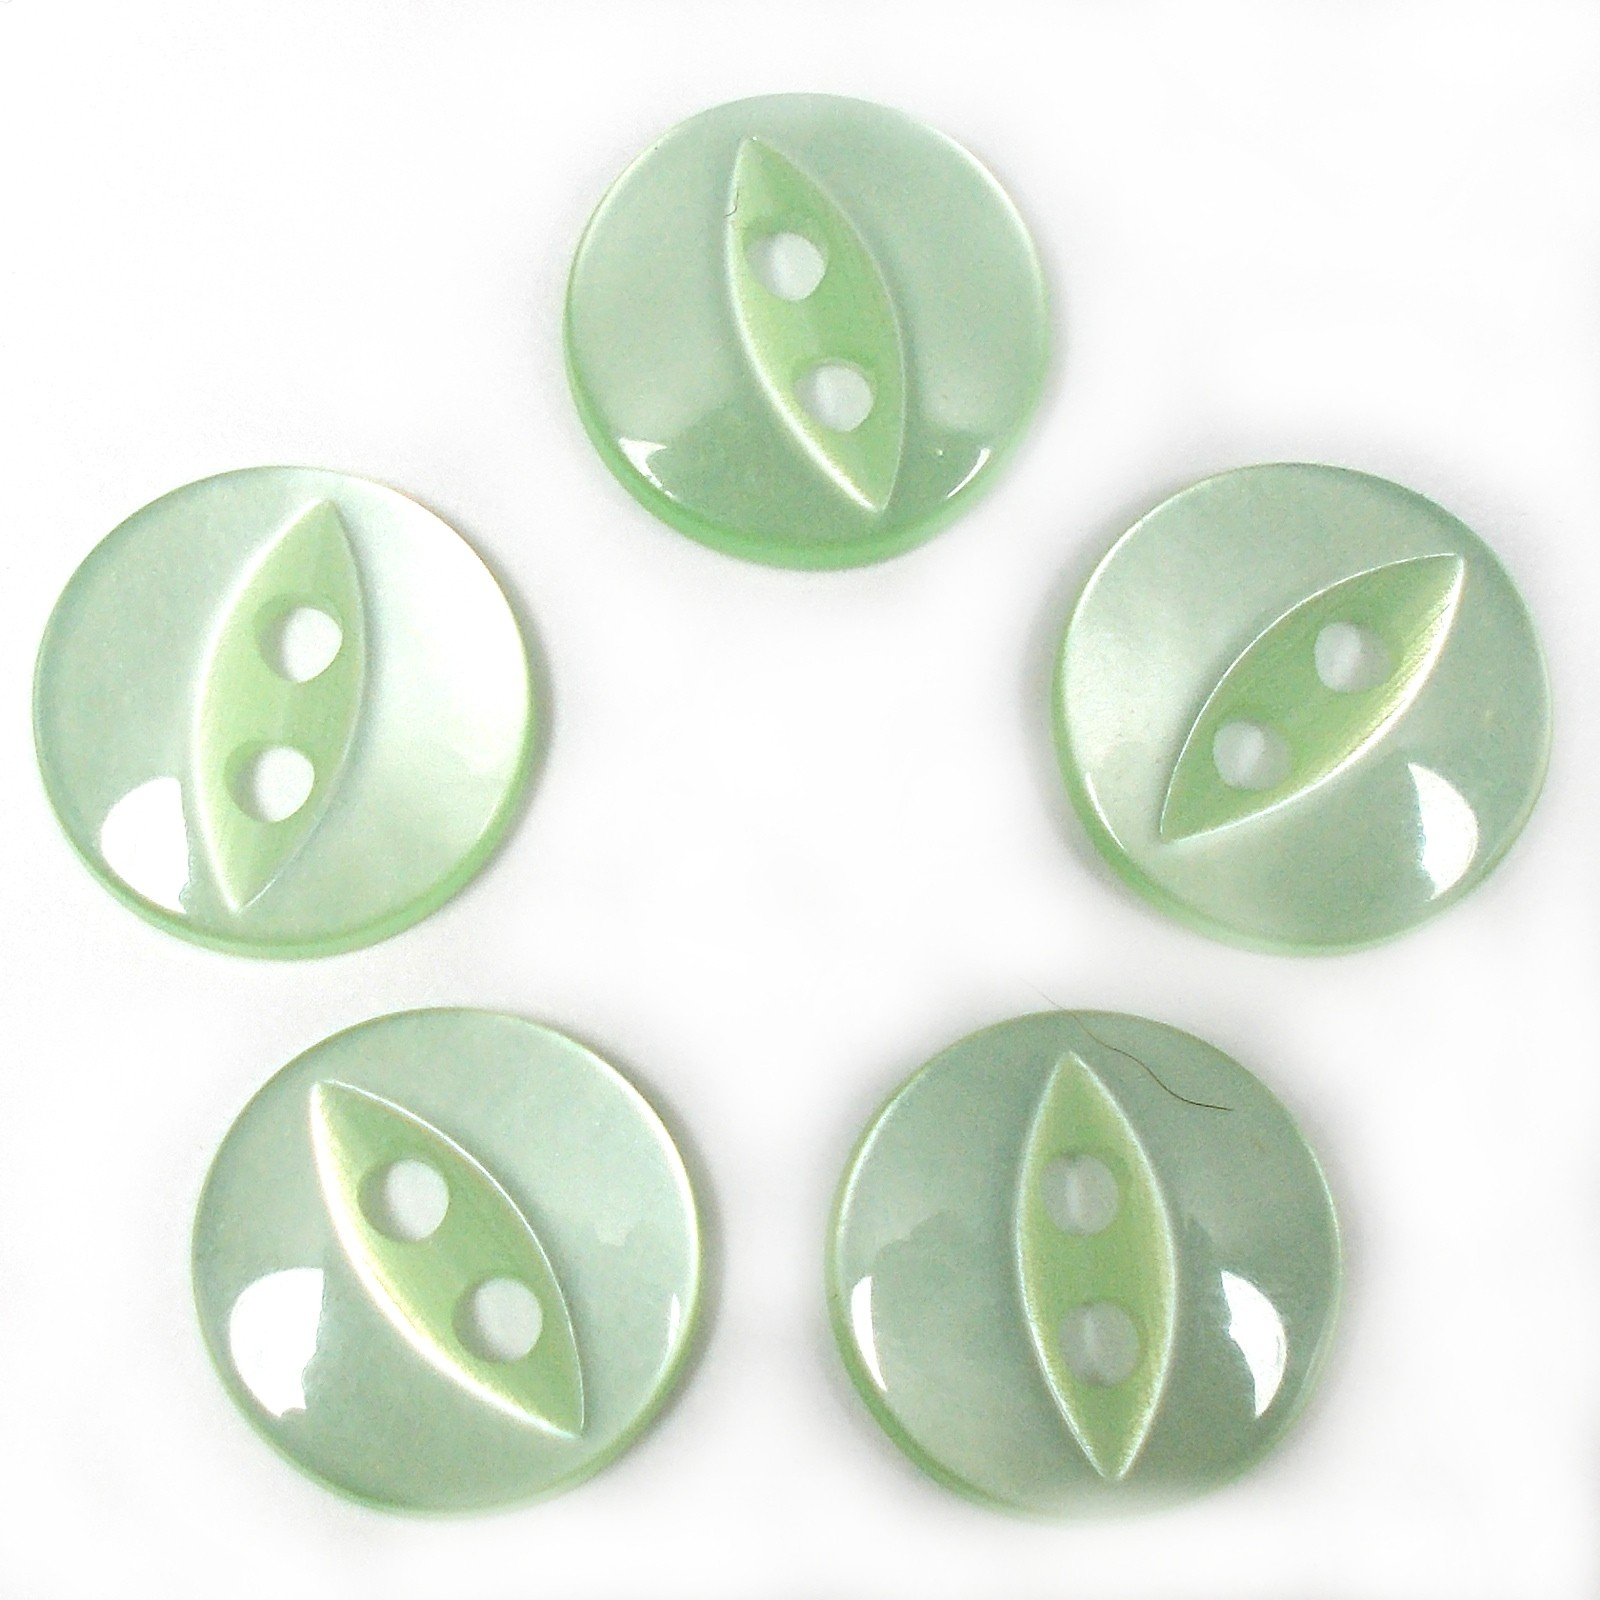 Fisheye Basic Buttons 16mm Mint Green Pack of 5